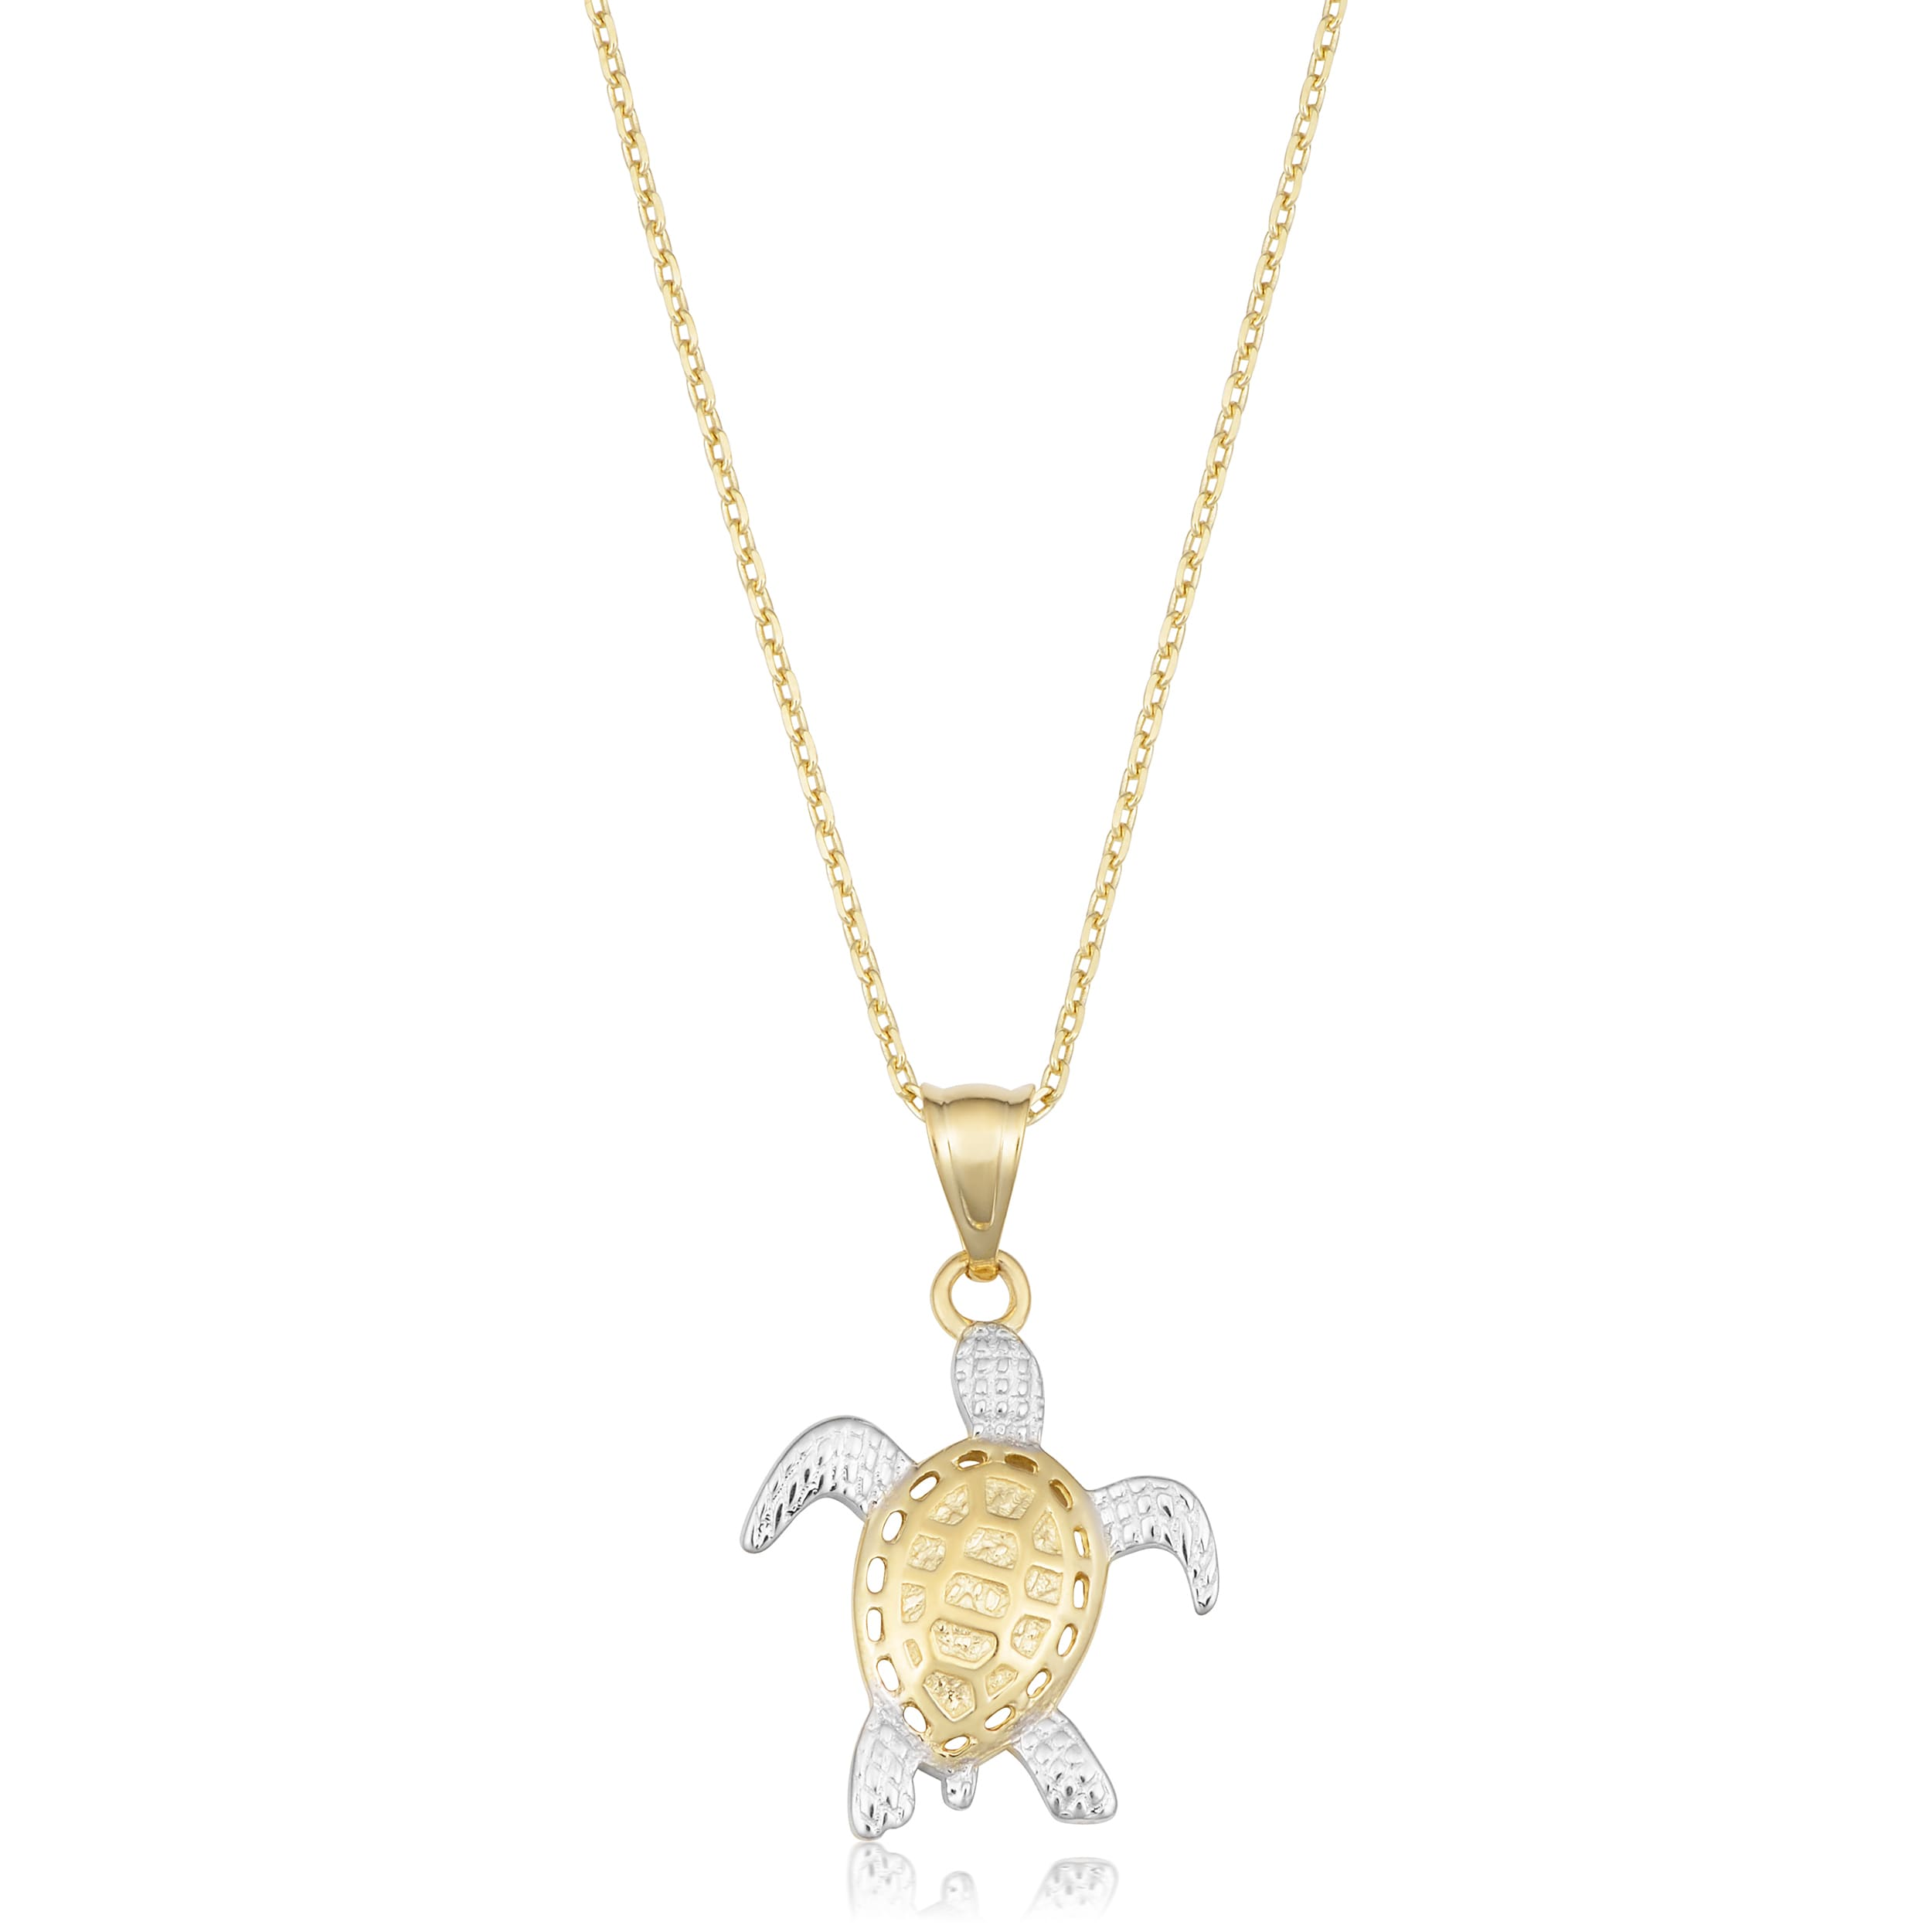 Fremada 14k two tone gold turtle pendant necklace 18 inch free fremada 14k two tone gold turtle pendant necklace 18 inch free shipping today overstock 22350260 aloadofball Choice Image